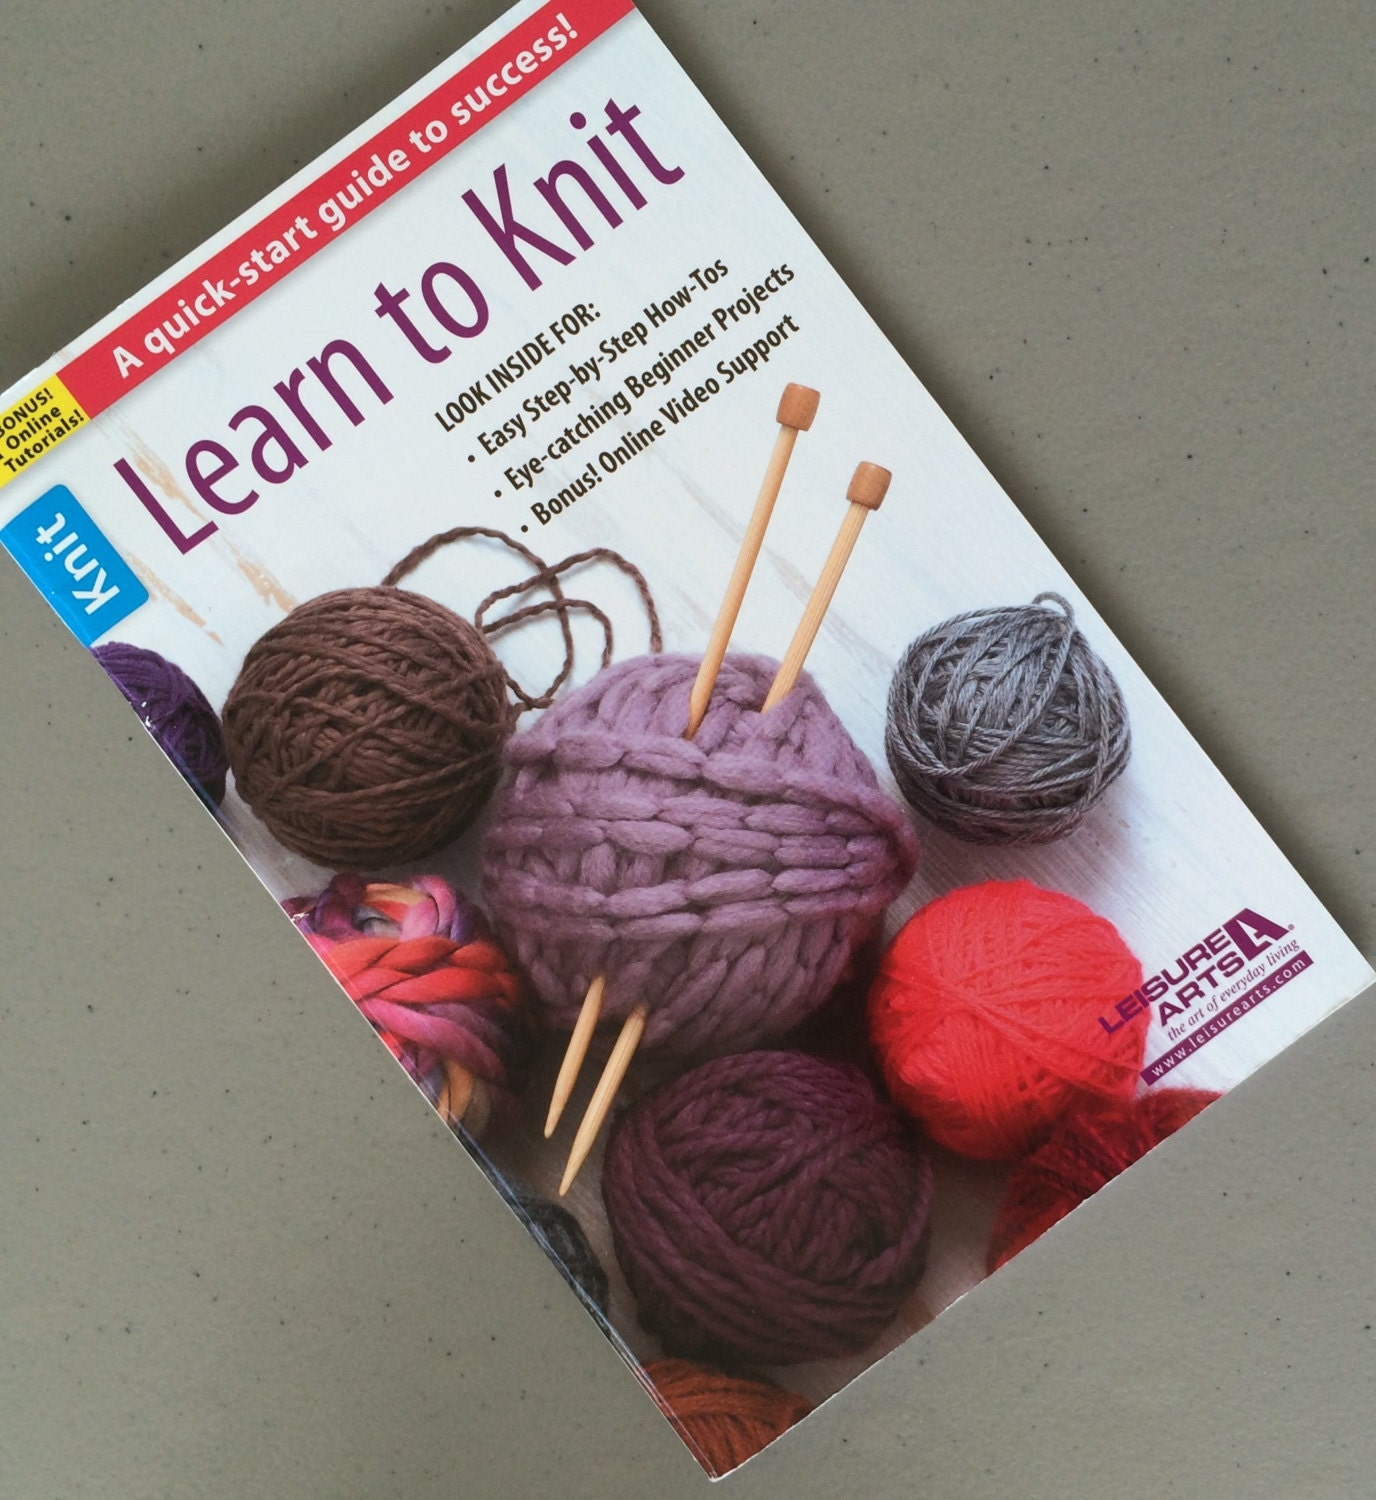 Knitting Basics Getting Started : Learn to knit kit beginner knitting book how get started